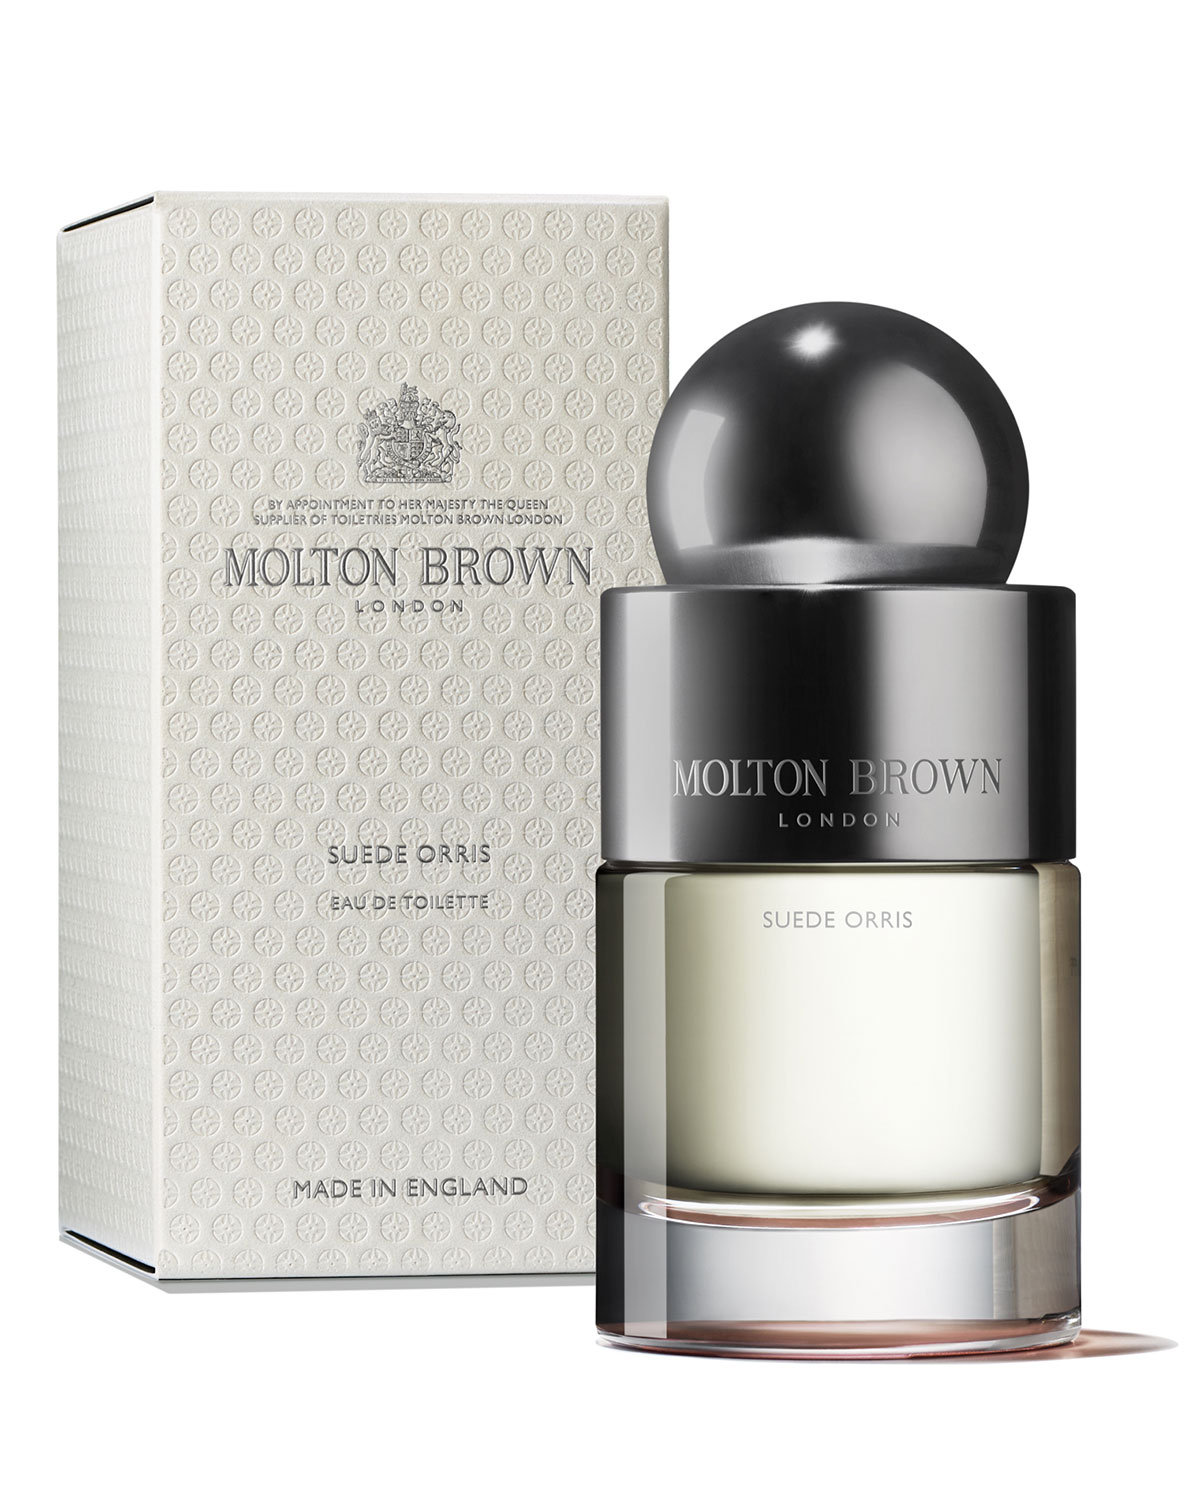 Molton Brown 1.7 oz. Suede Orris Eau de Toilette